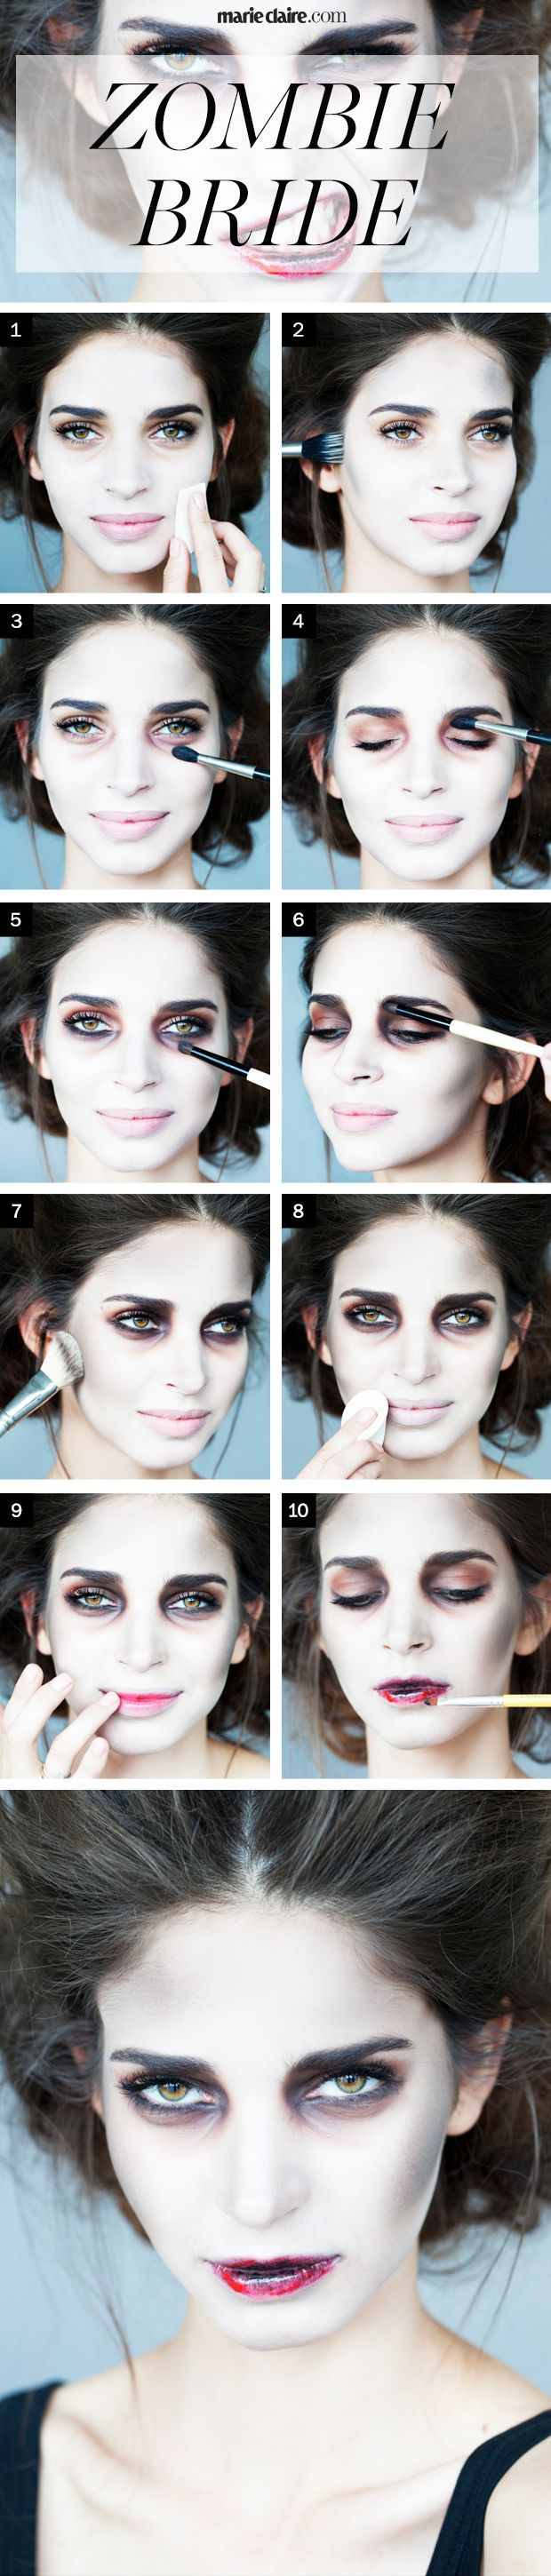 make up for bride zombie